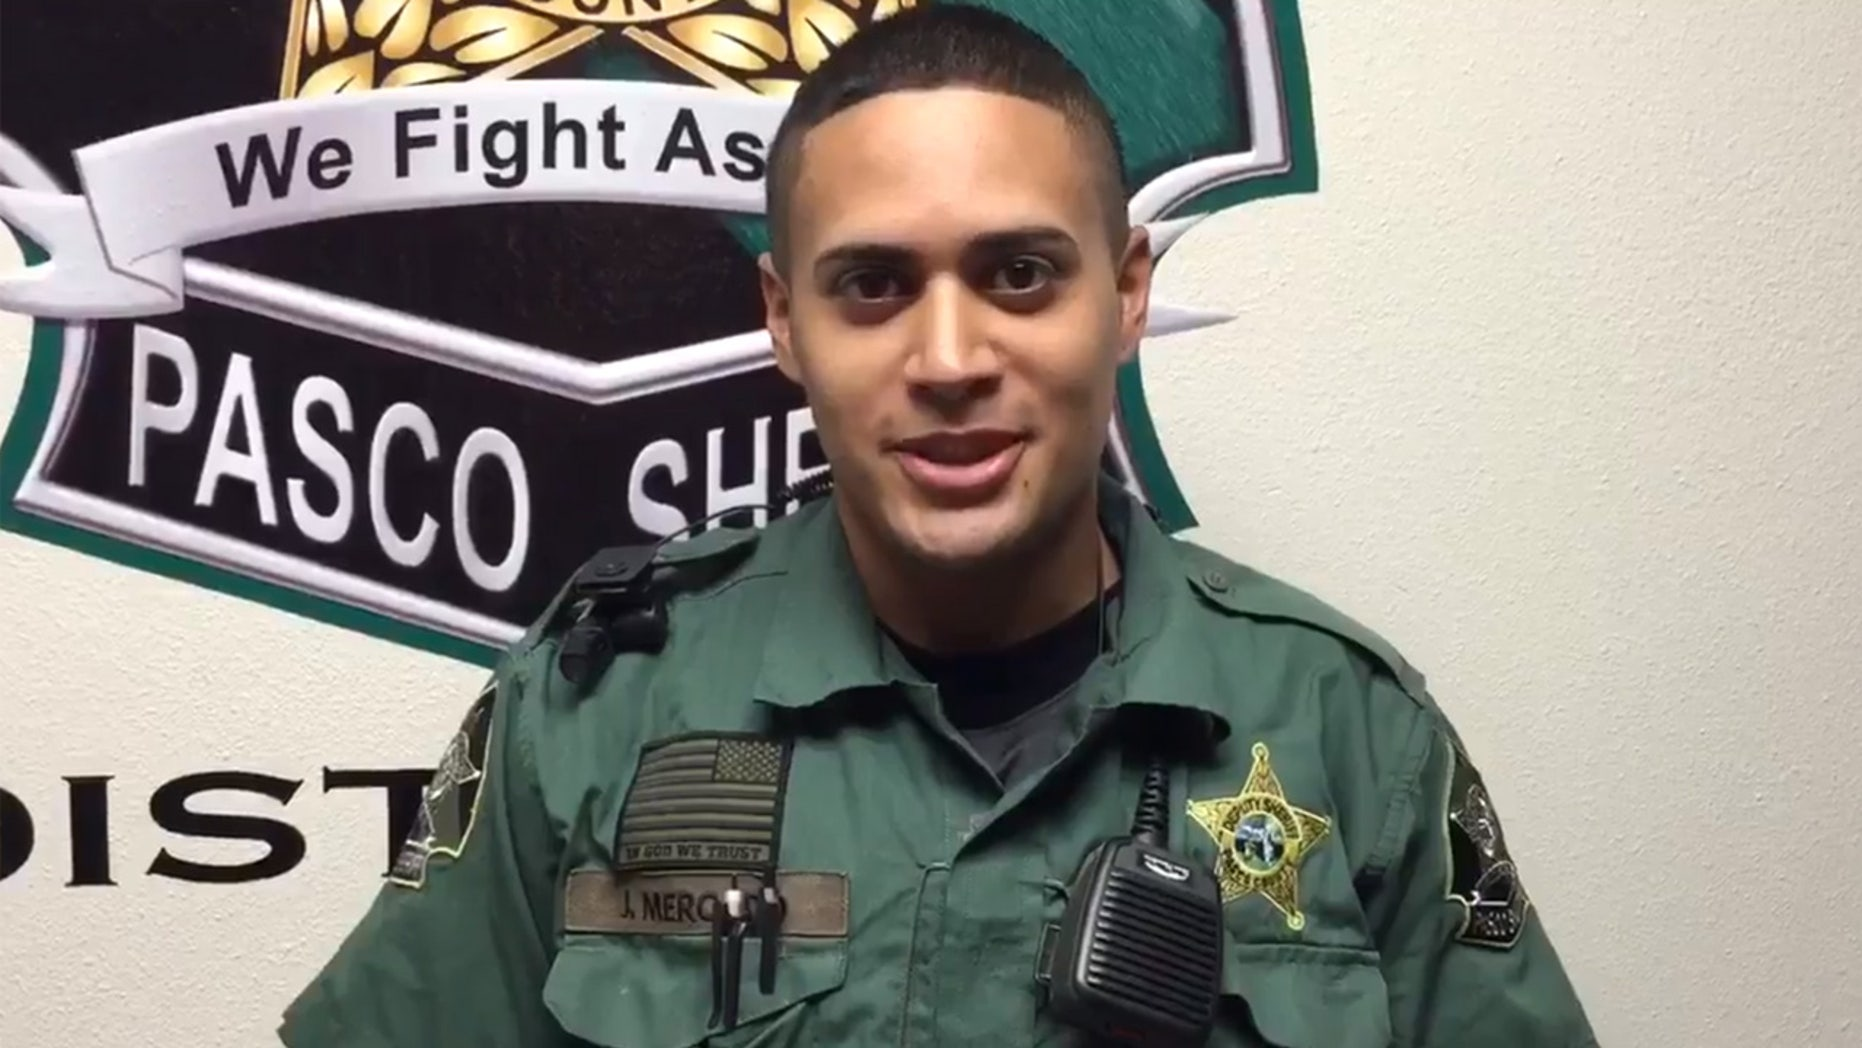 Florida cop from 'LIVE PD' show fired after alleged lewd